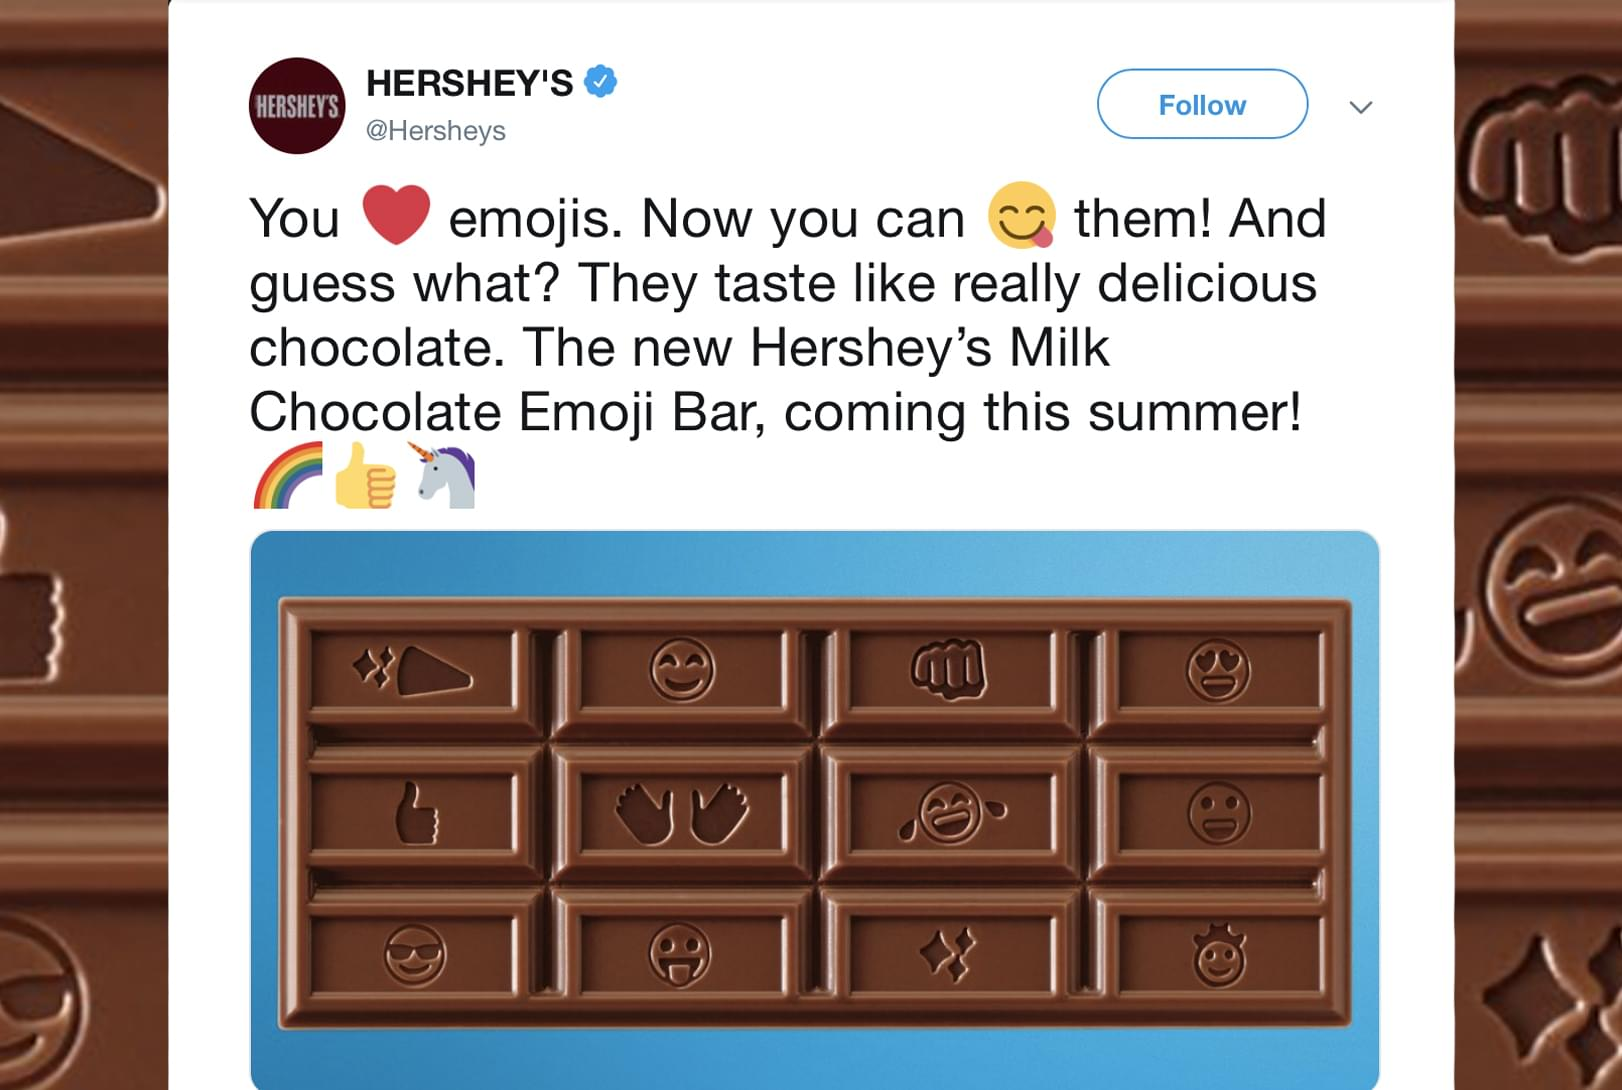 Hershey's just redesigned their chocolate bars for the first time in 125 years… to add emojis